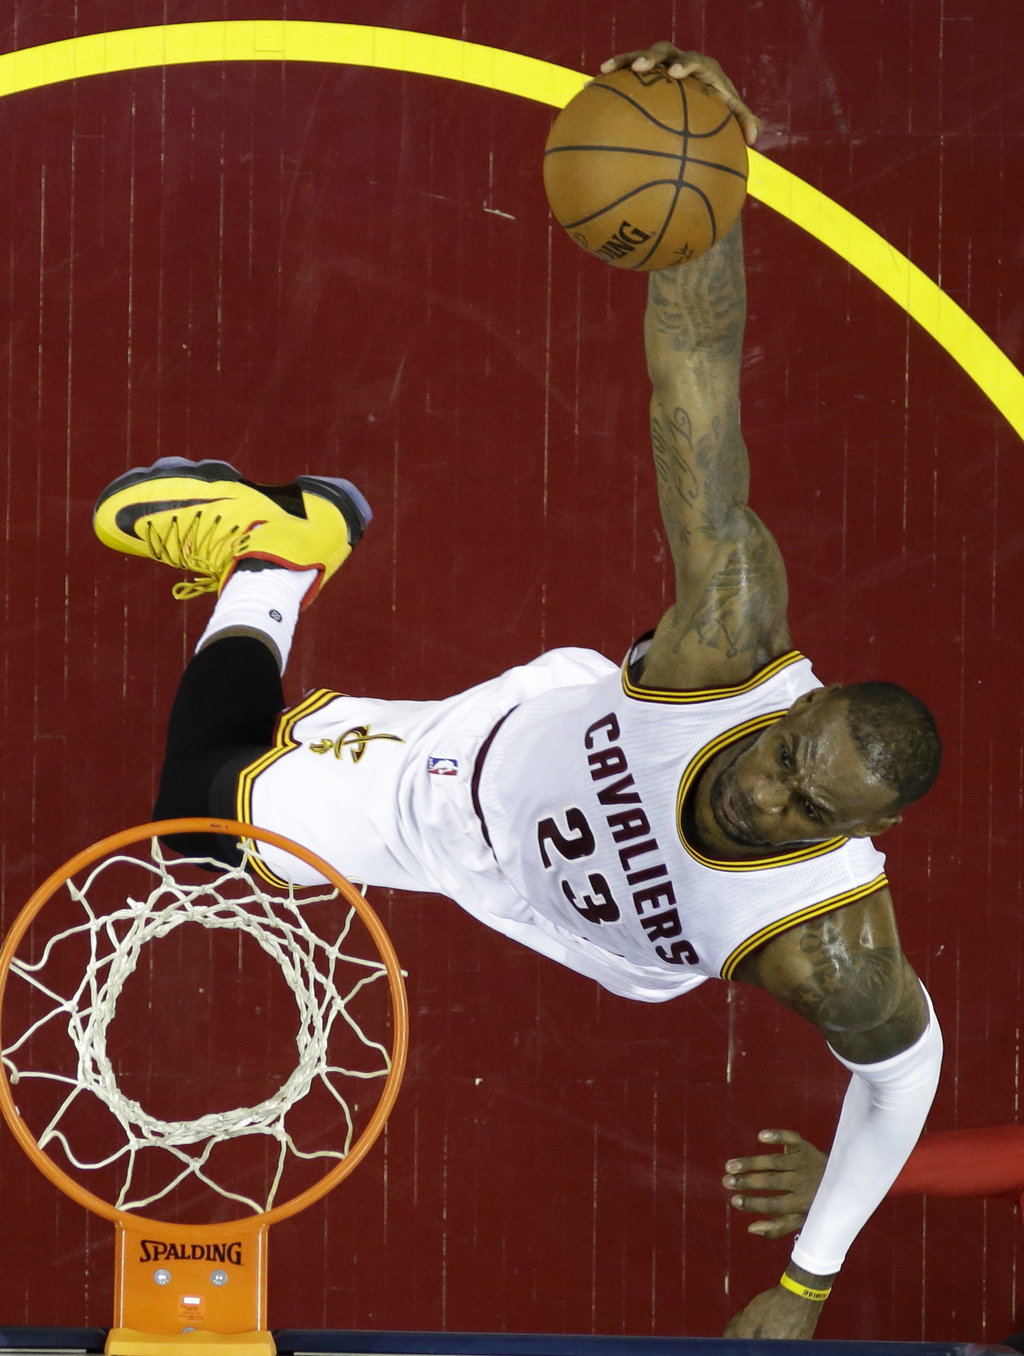 FILE - In this May 17, 2016 file photo, Cleveland Cavaliers' LeBron James dunks against the Toronto Raptors during the first half of Ga...